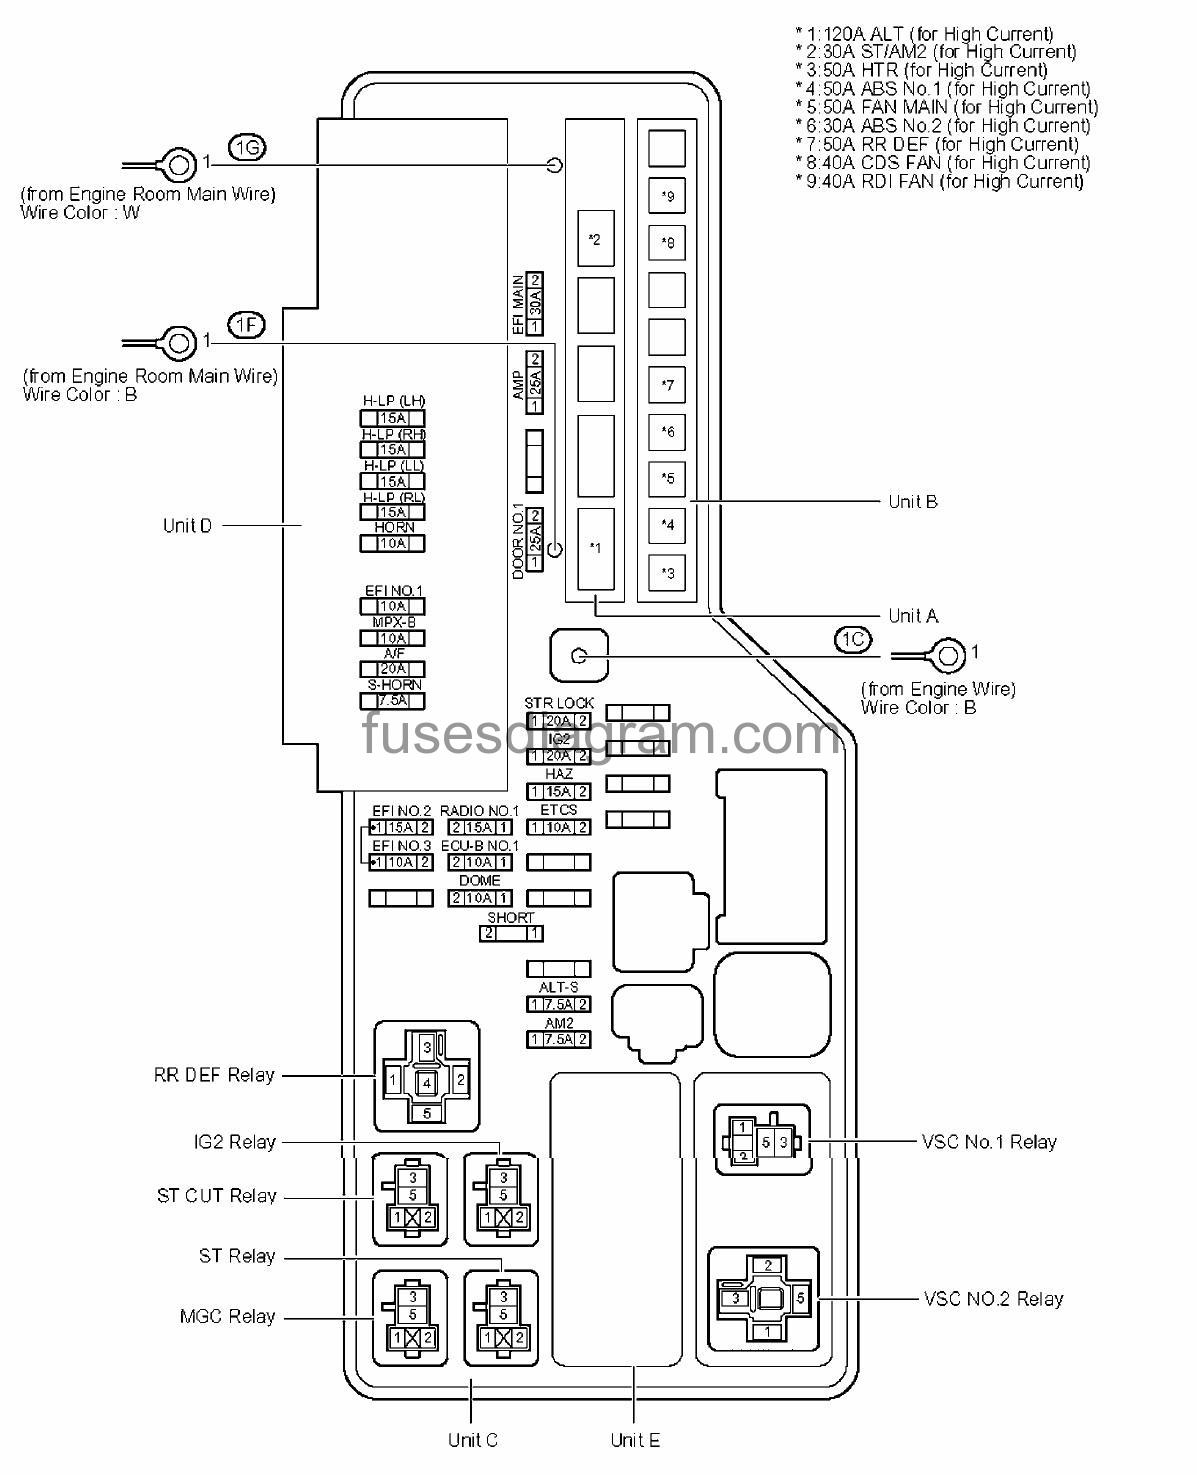 Toyota 5a Engine Wiring Diagram Not Lossing Forklift Pdf Library Rh 61 Codingcommunity De Pcb 82 Celica